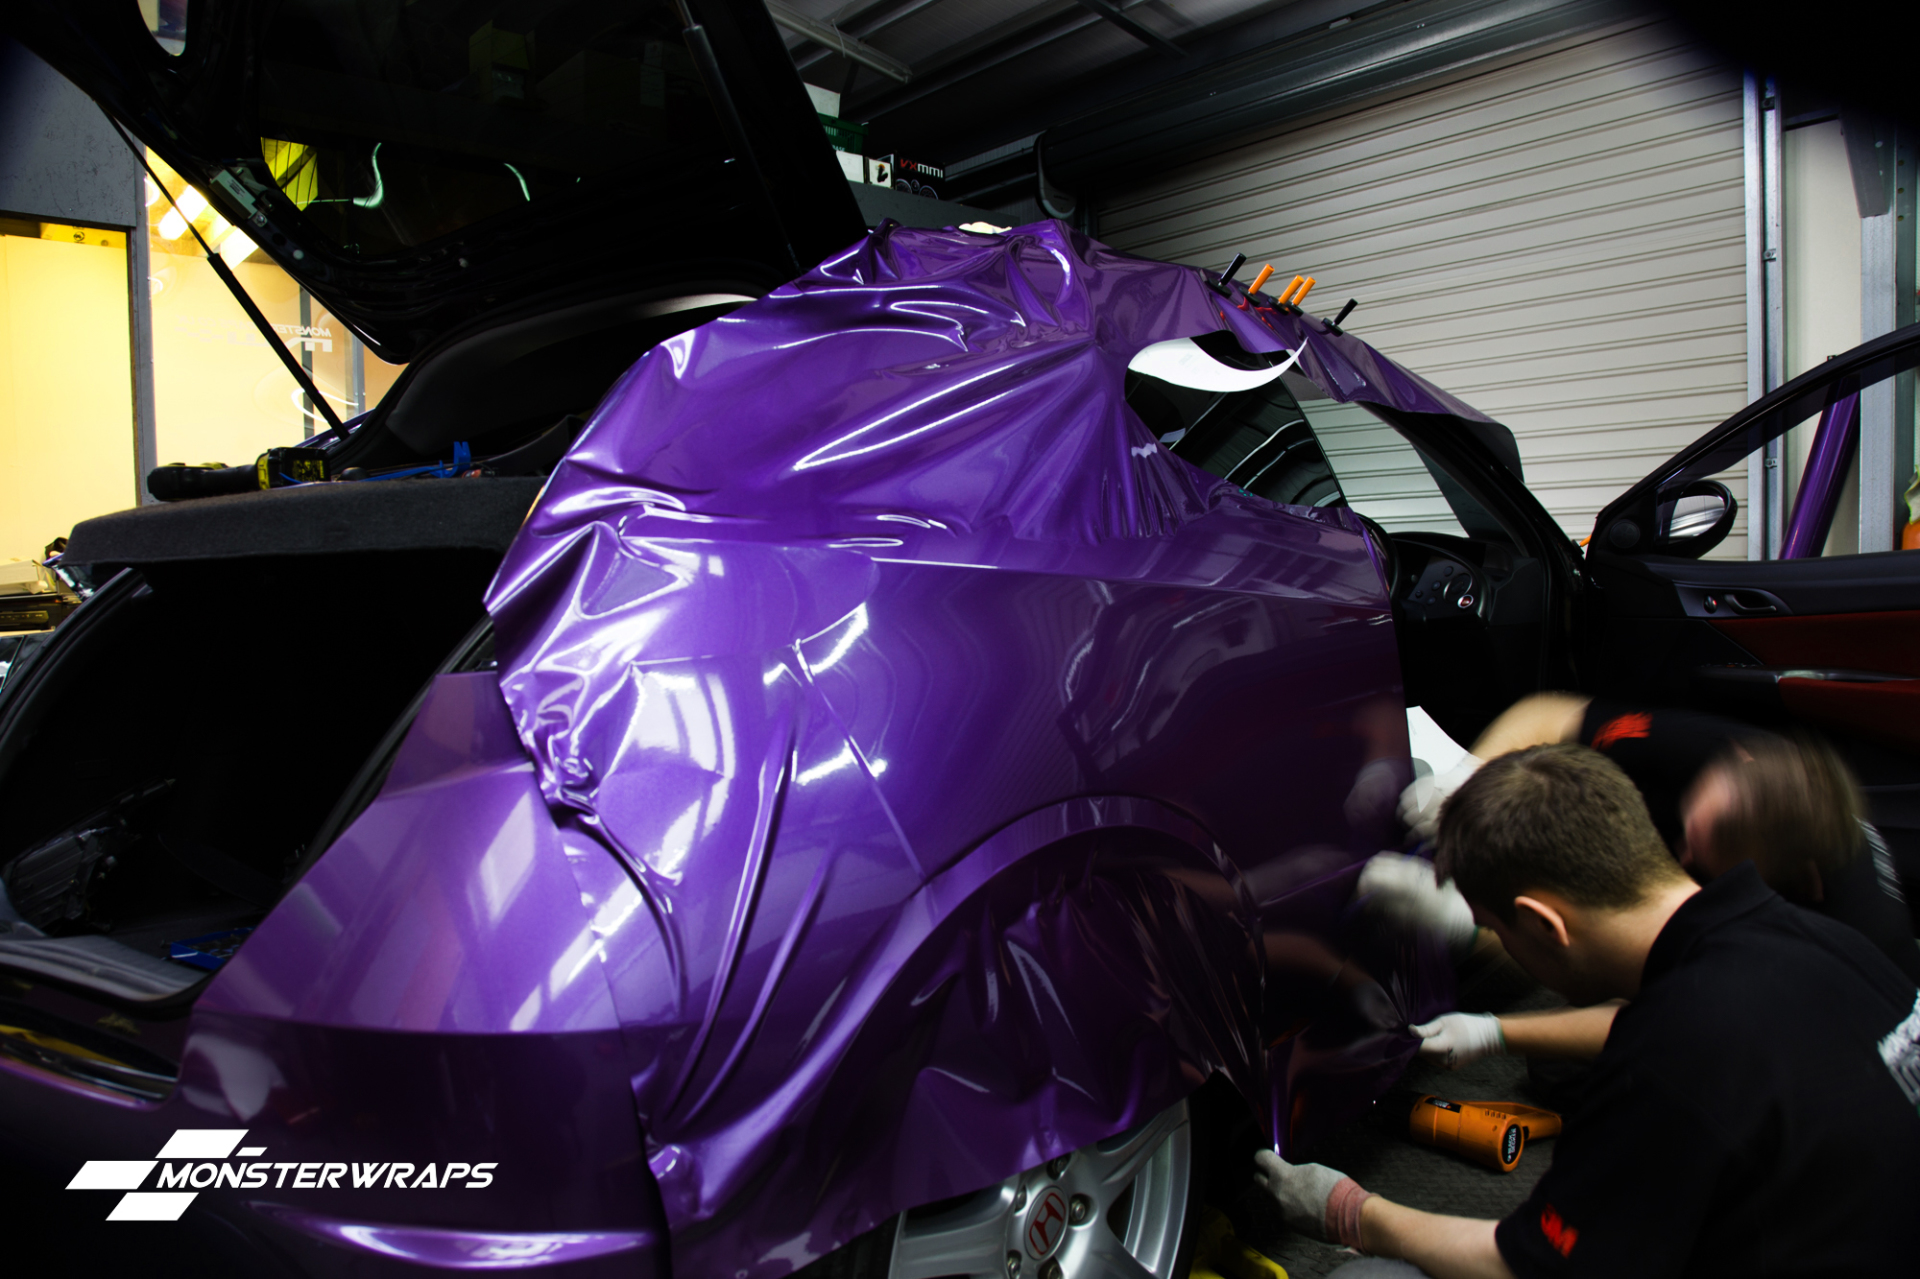 Honda Civic Type R Gloss metallic purple wrap car wrapping southampton uk